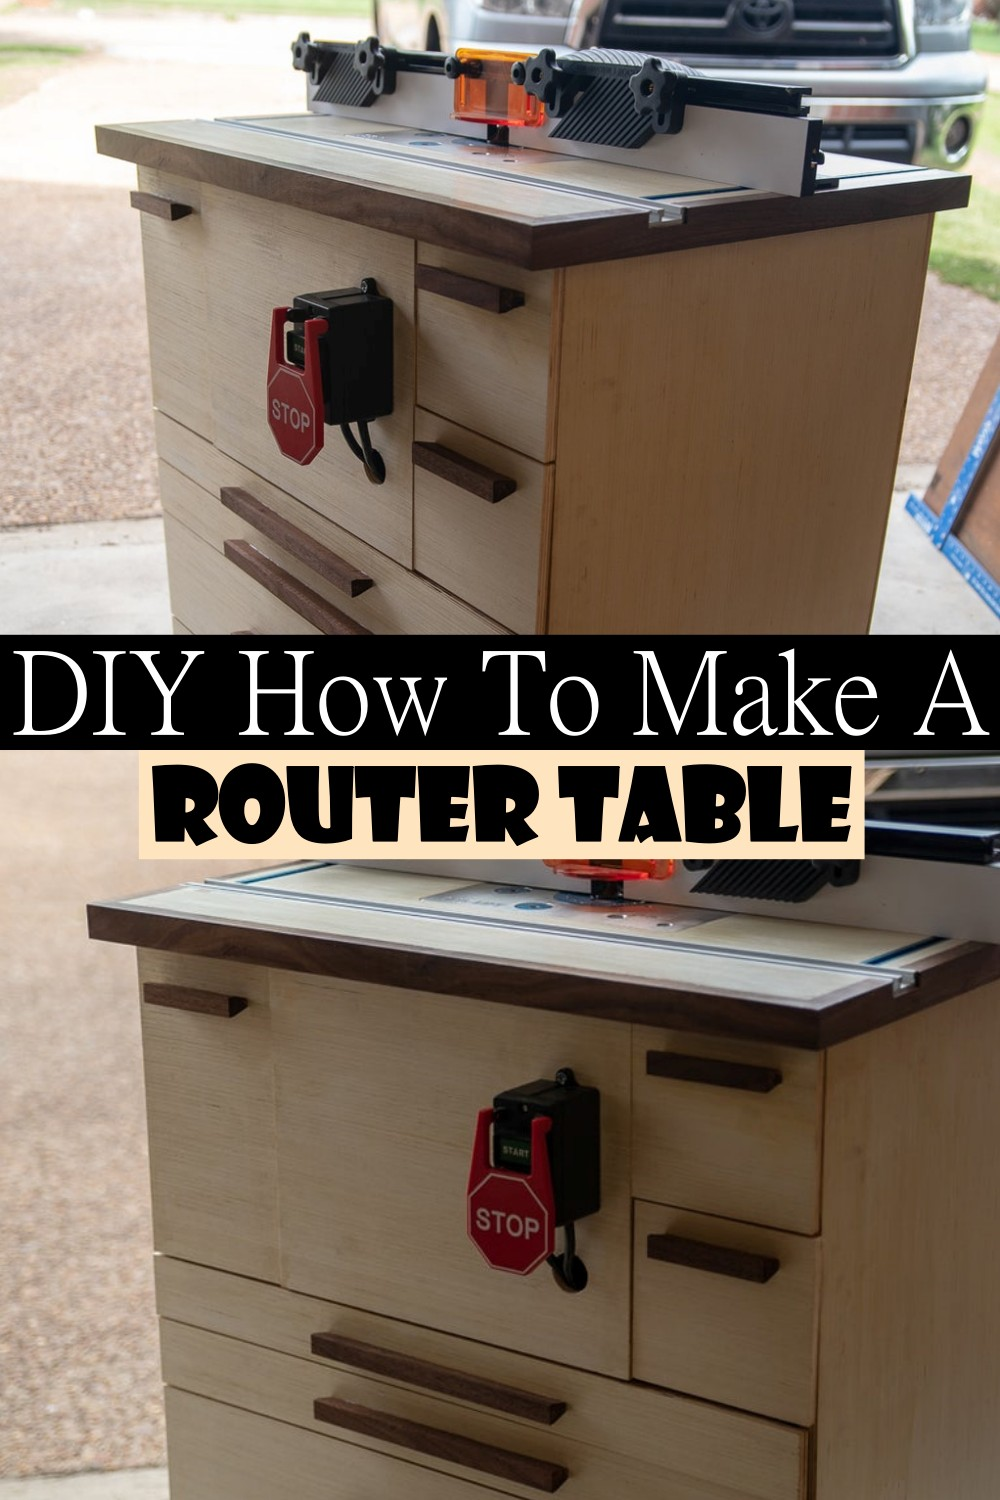 DIY How To Make A Router Table